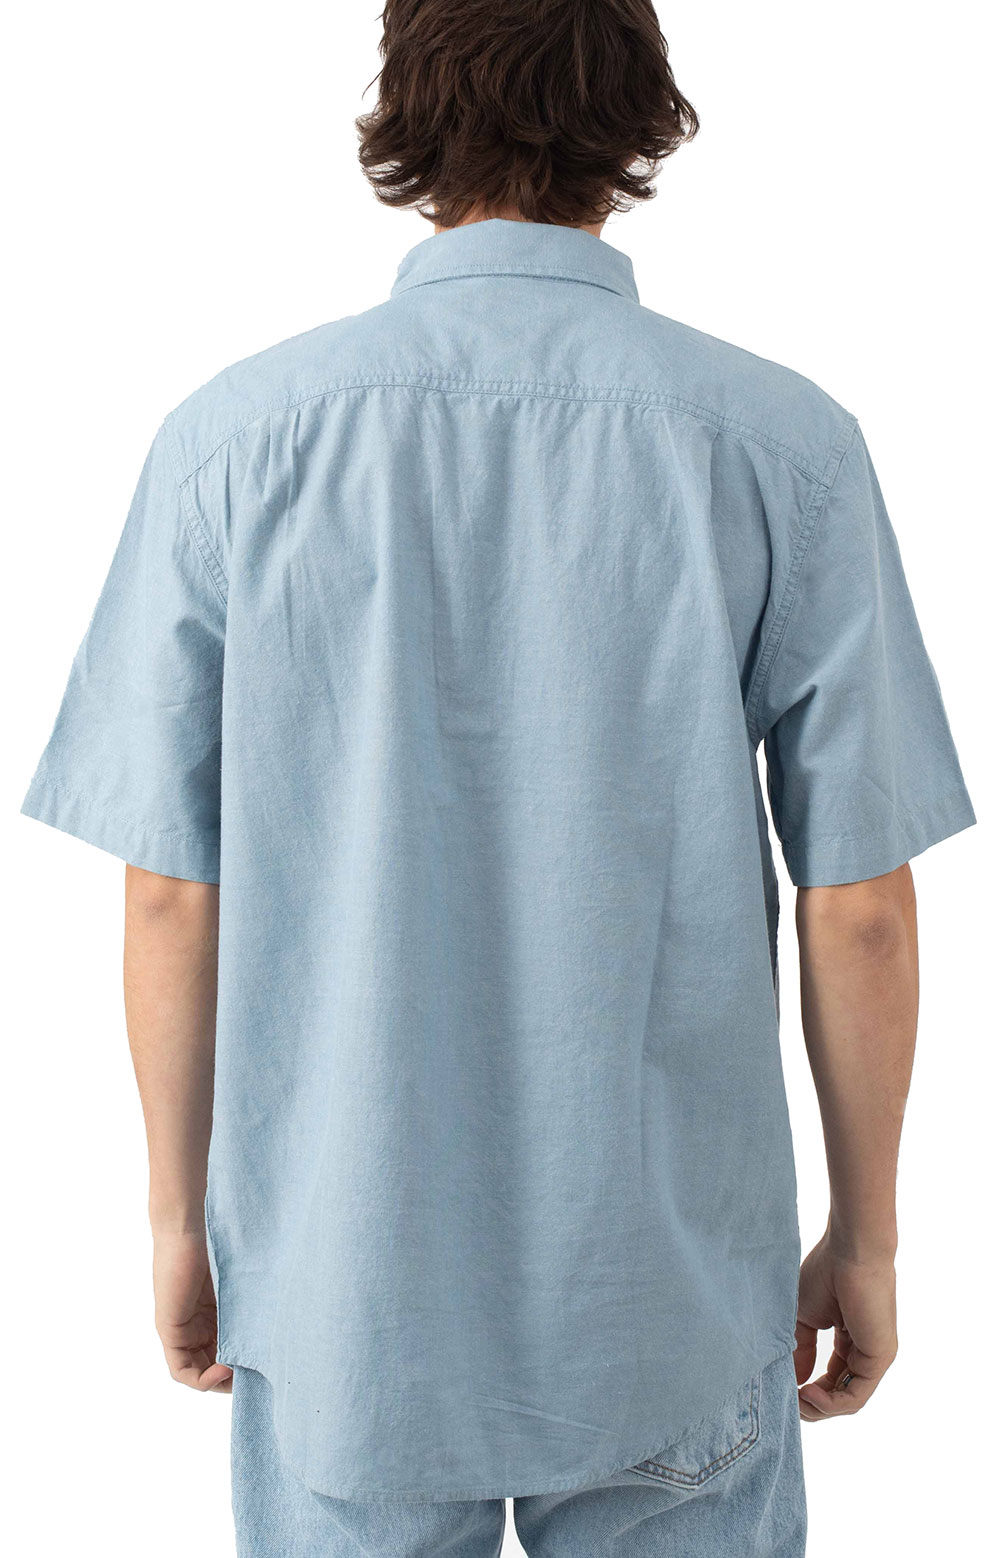 (104369) Original Fit MW S/S Button-Up Shirt - Blue Chambray  3